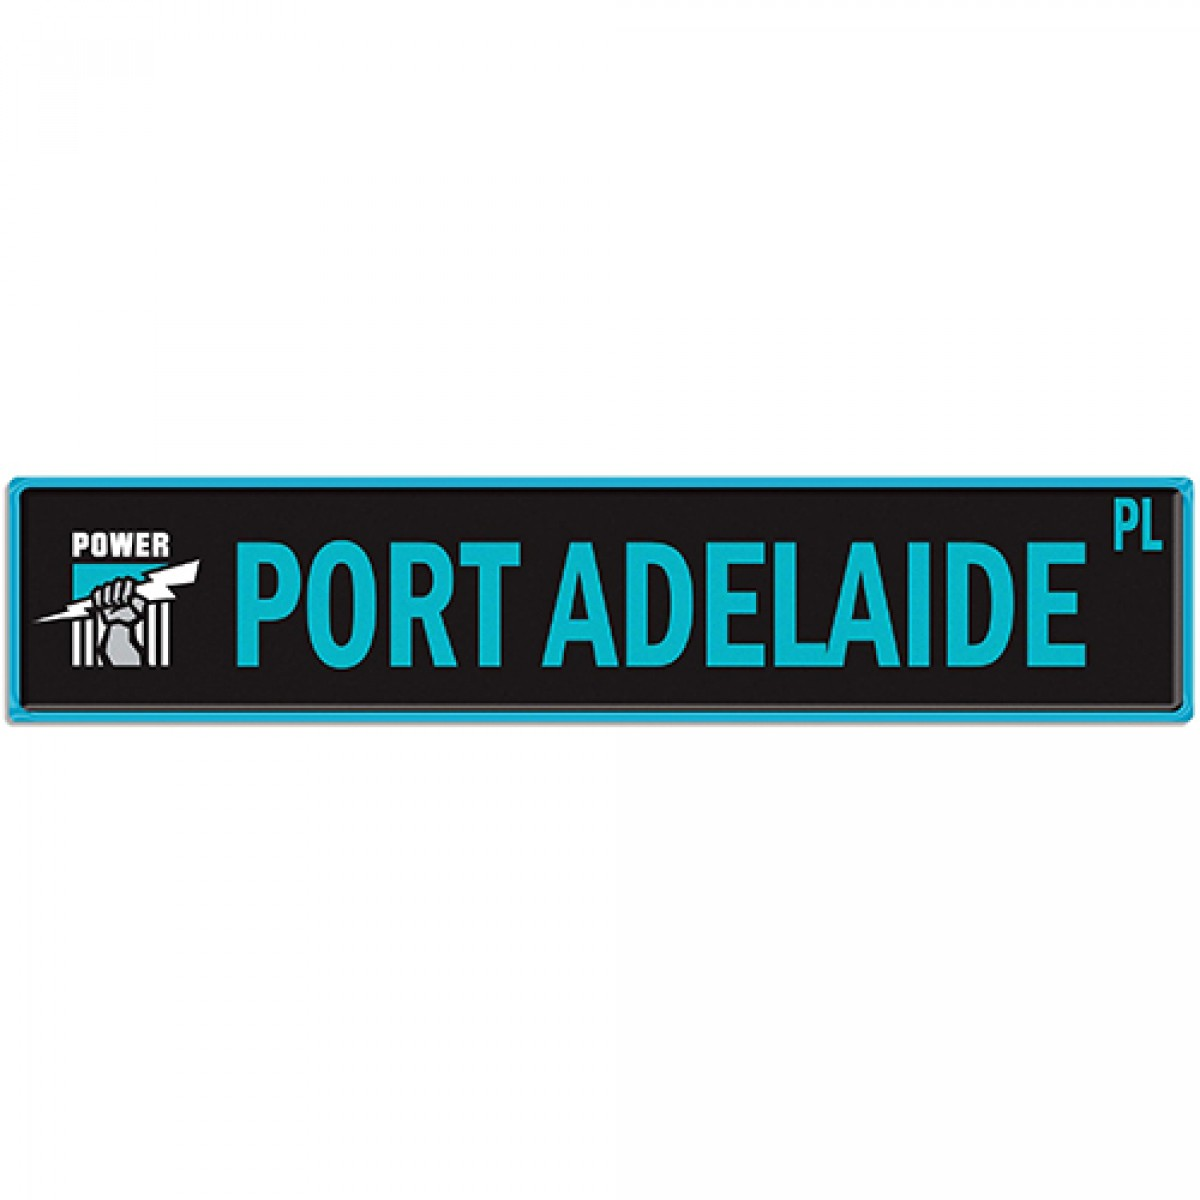 Man Cave Gifts Adelaide : Afl port adelaide street sign signs man zone gift